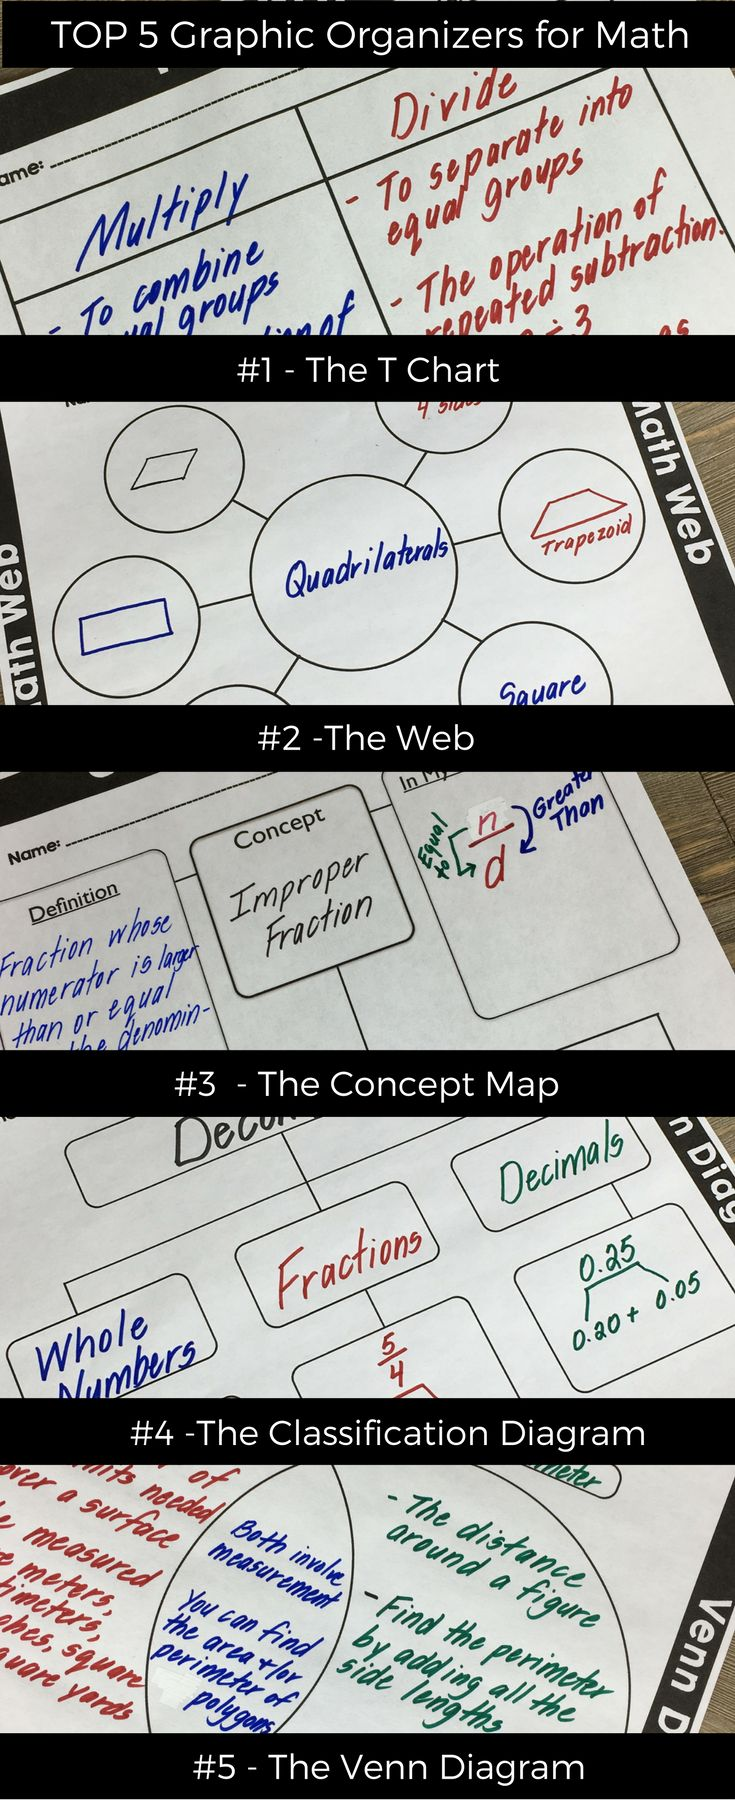 Learn how to use graphic organizers to help your students make connections and organize their thinking in math class. #mathtutoring